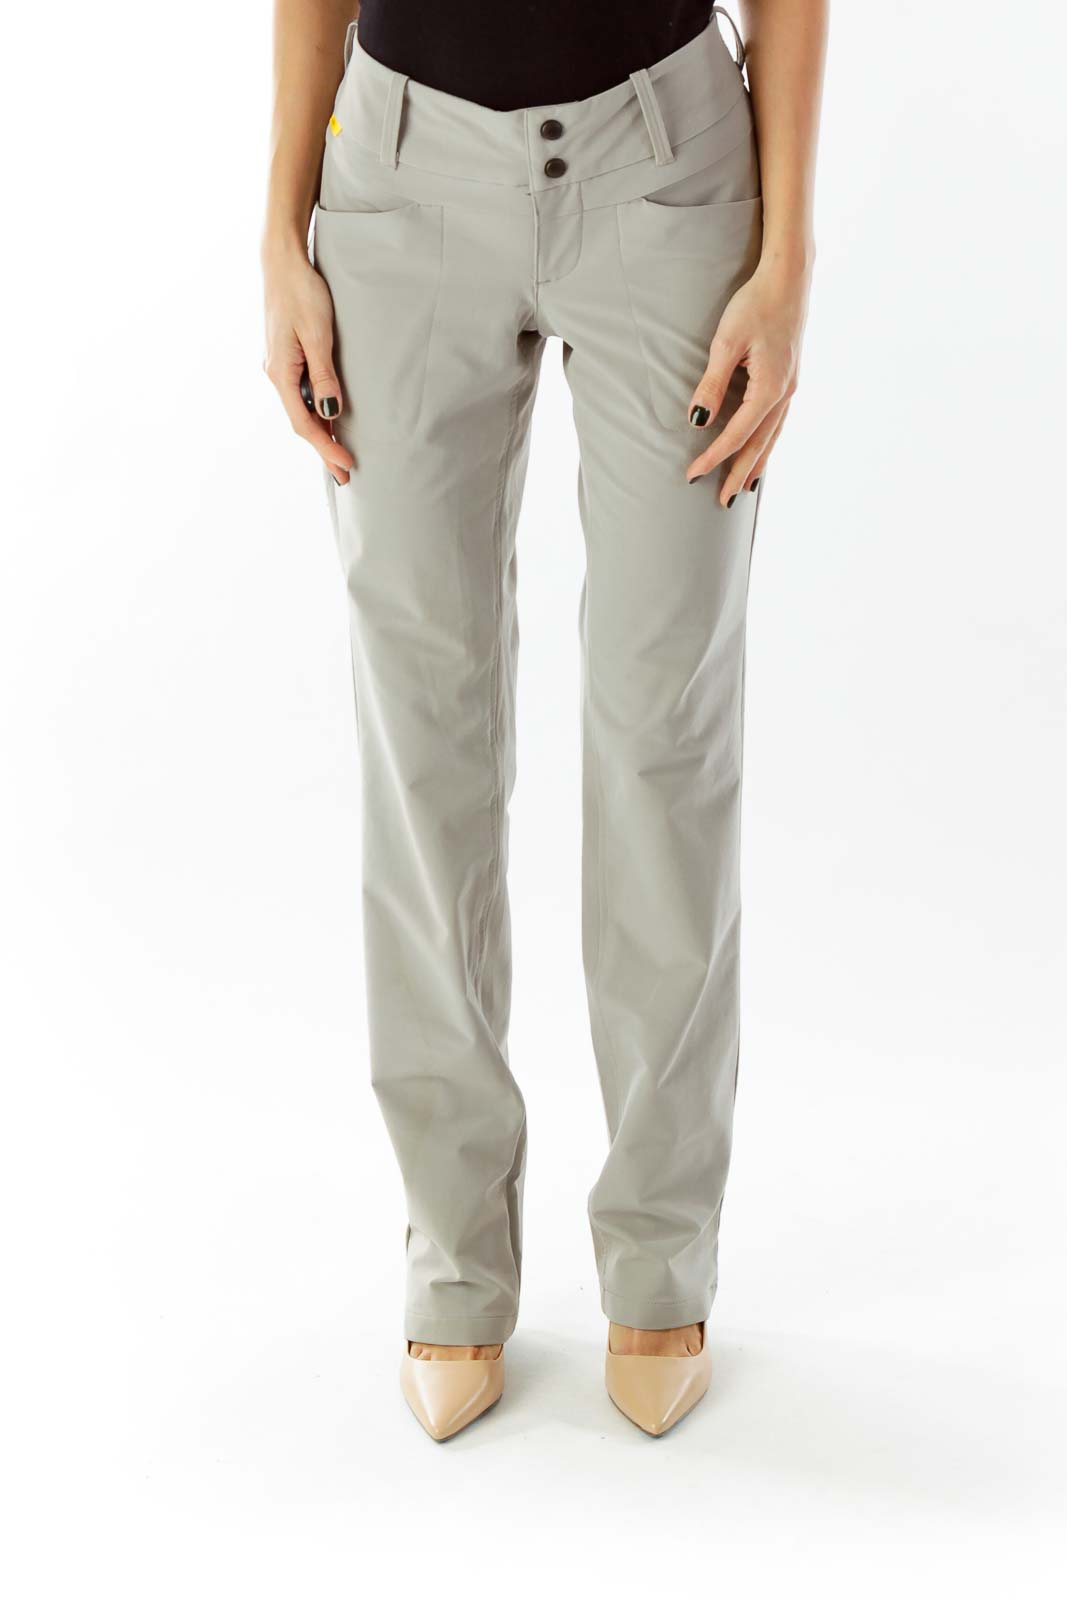 Beige Pocketed Buttoned Straight-Leg Sports Pants Front